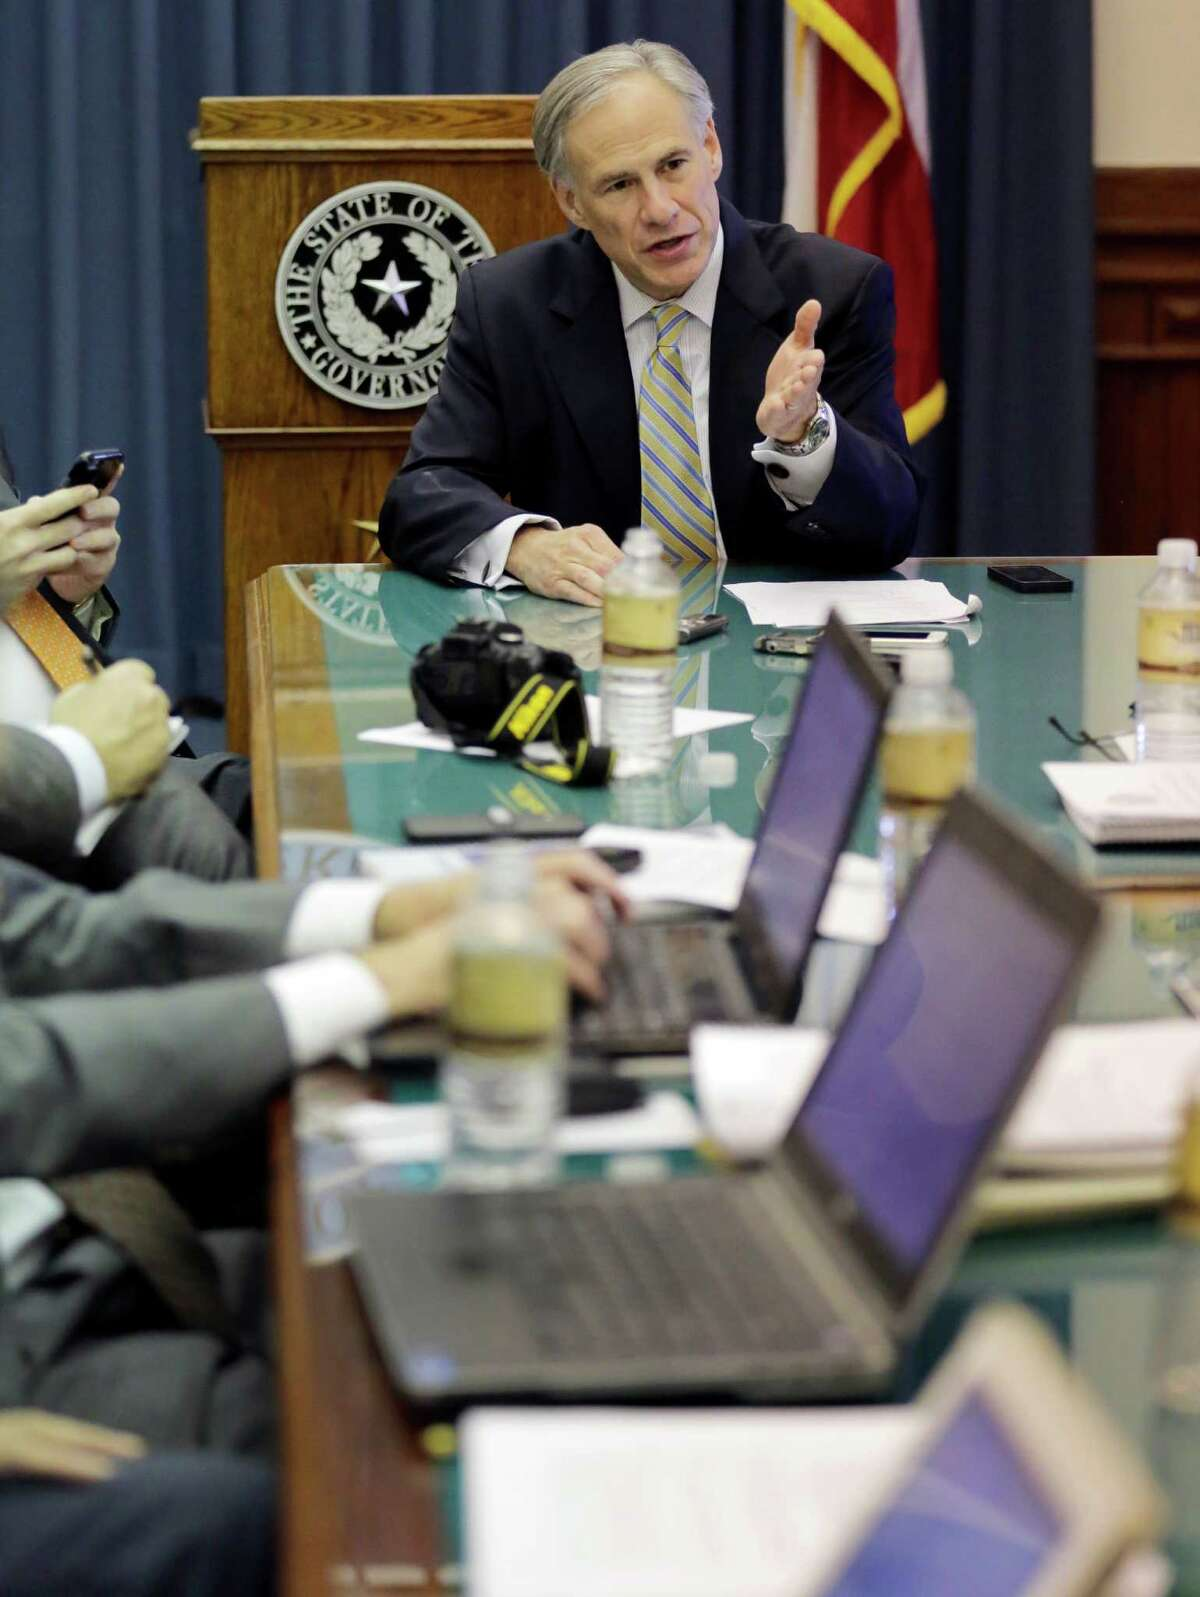 Texas Gov. Greg Abbott talks with news reporters during a round table talk in his office at the Texas Capitol, Wednesday, June 3, 2015, in Austin, Texas. (AP Photo/Eric Gay)